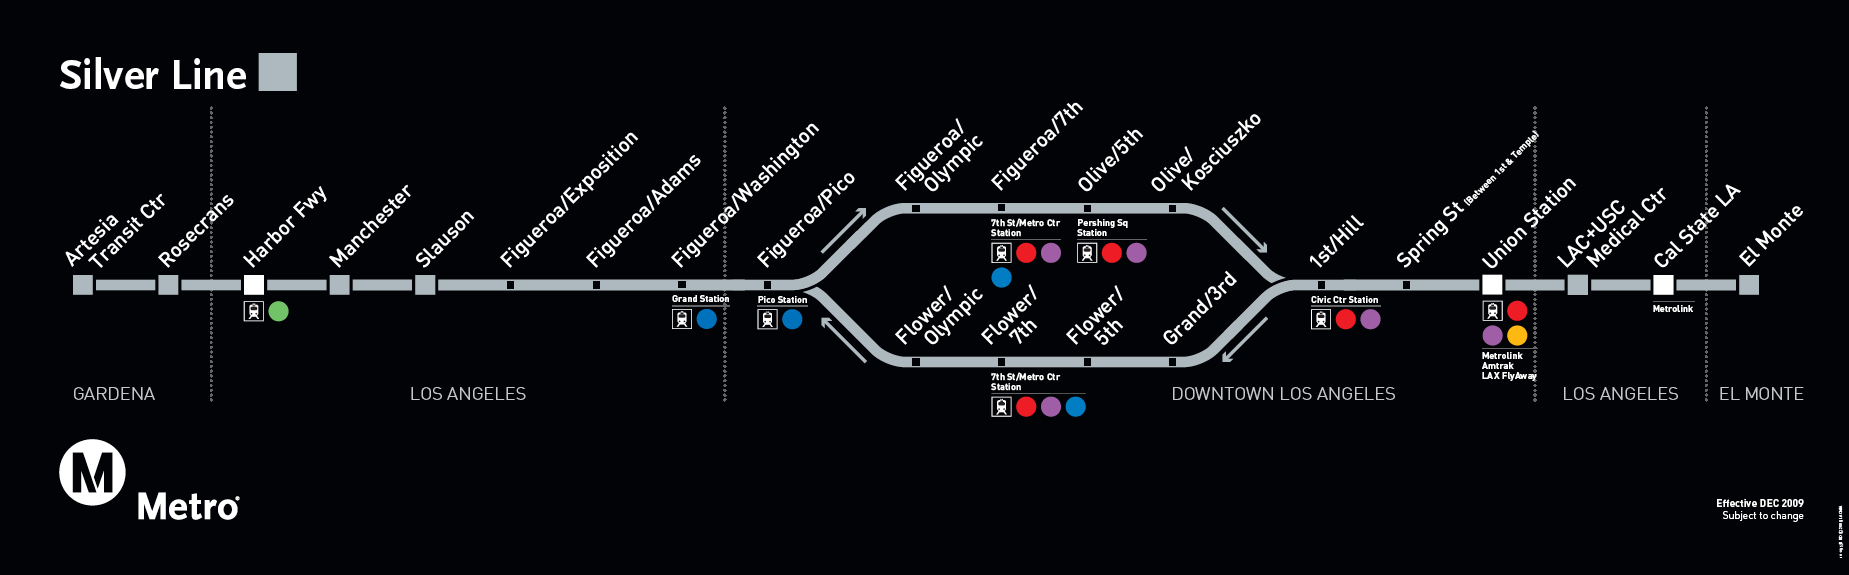 Guide To The Metro Silver Line The Source - Los angeles metro line map